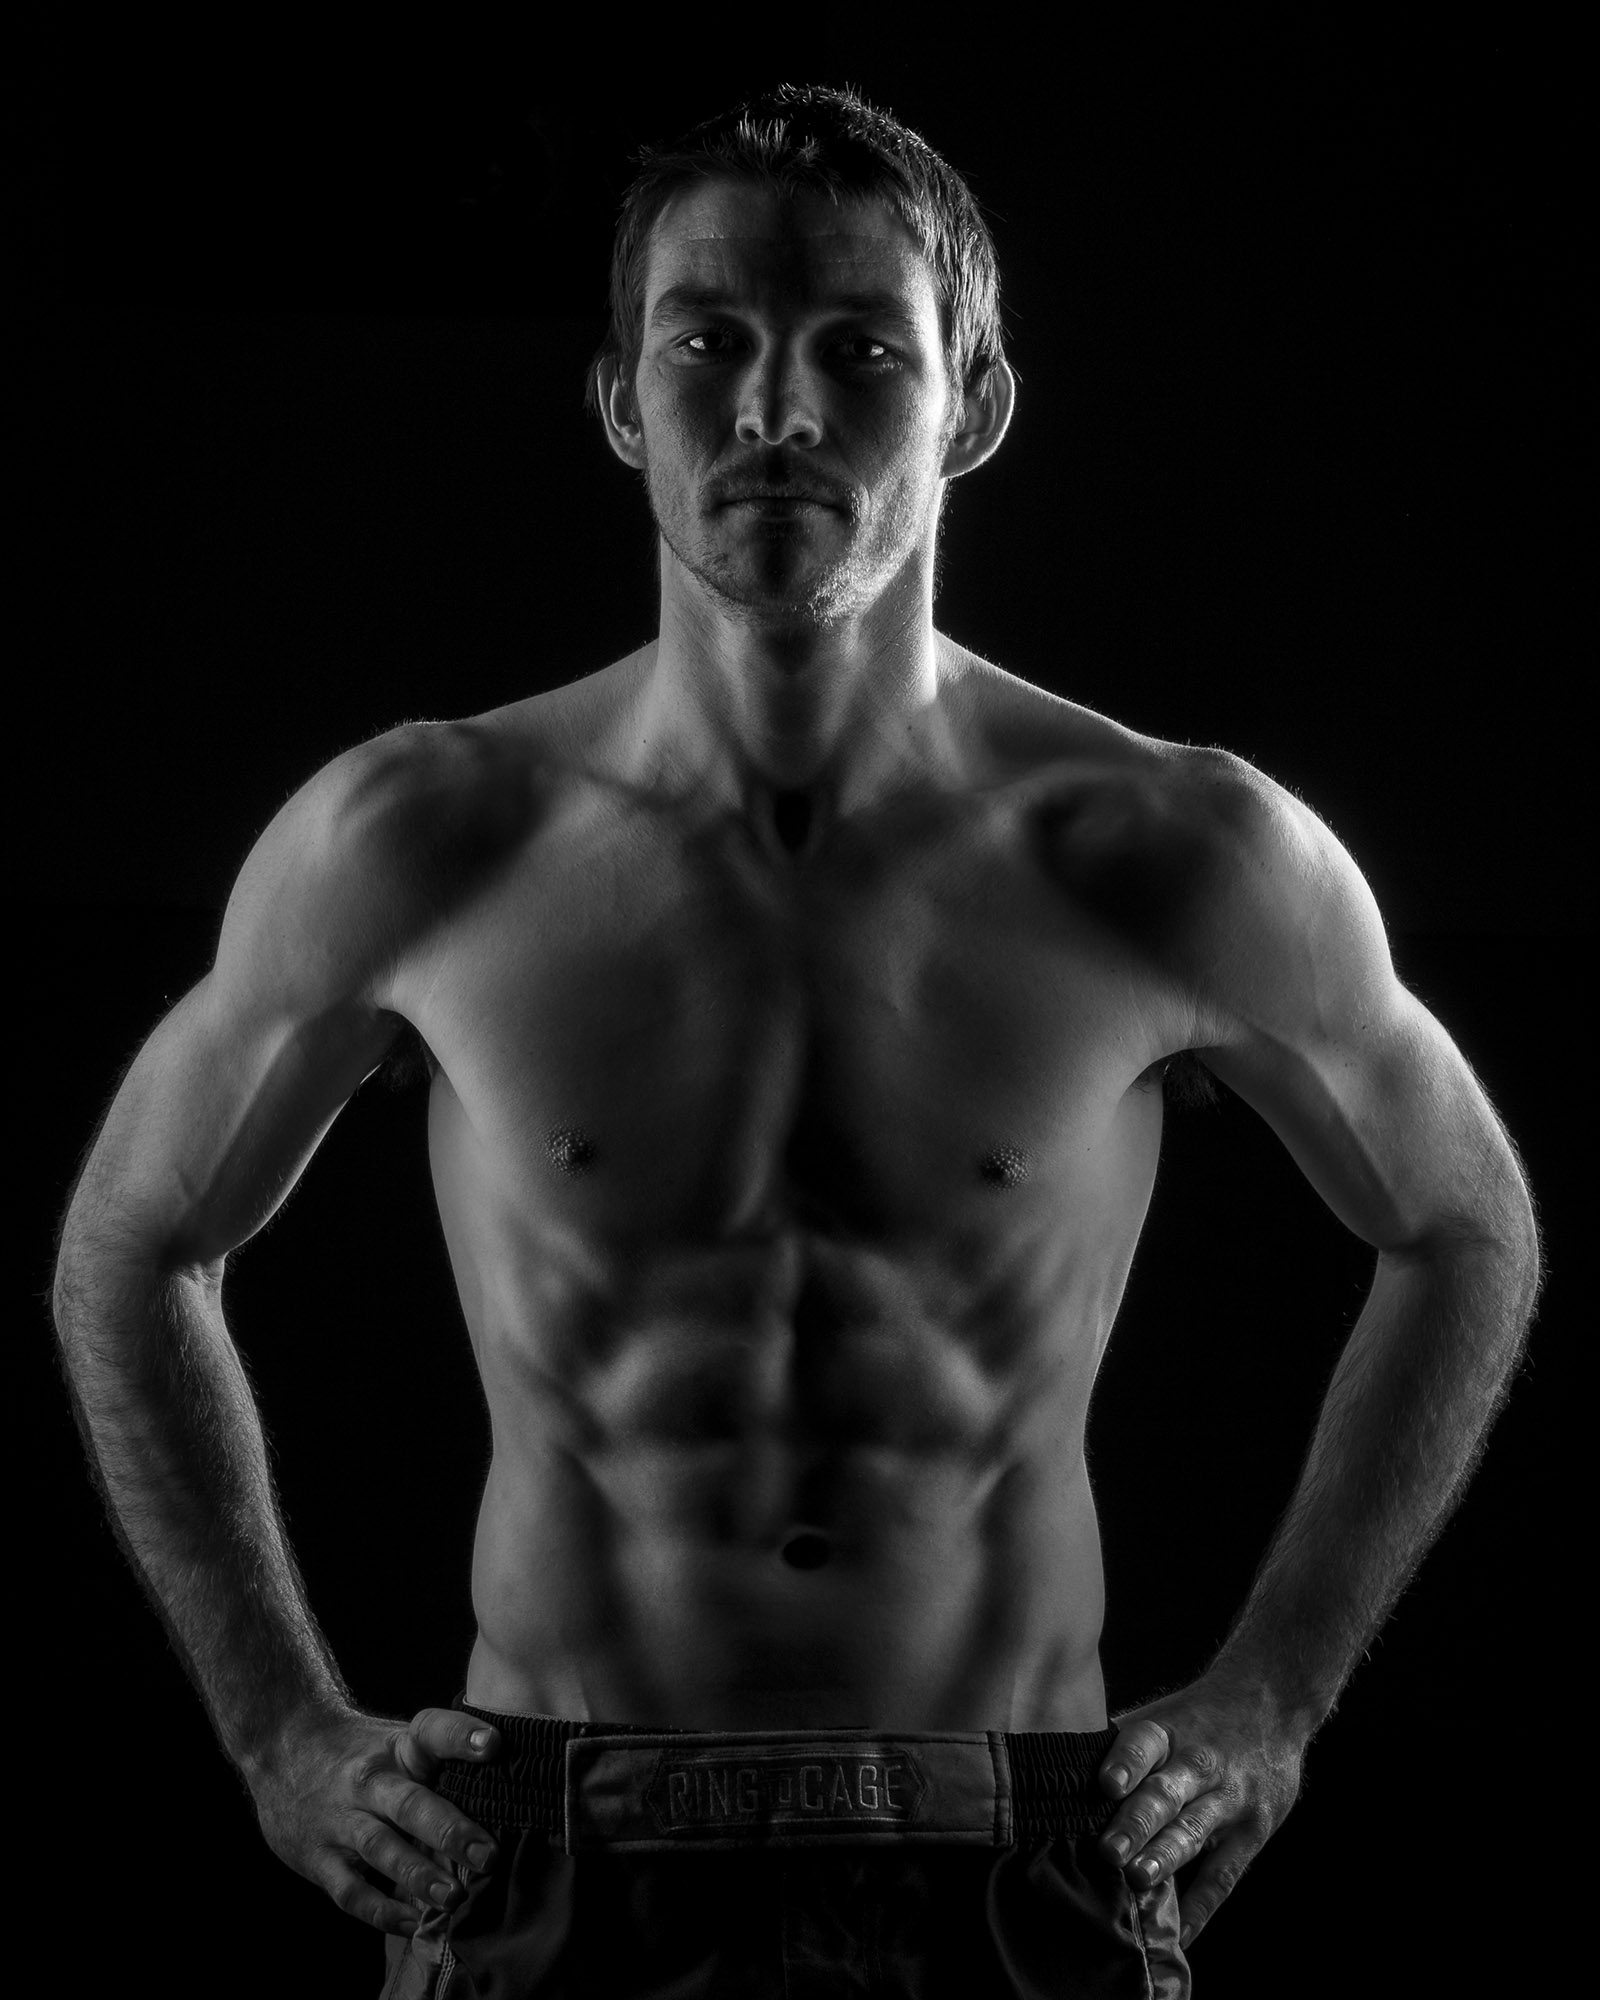 Promo style picture for Jessie, hard side light to accentuate his physique.